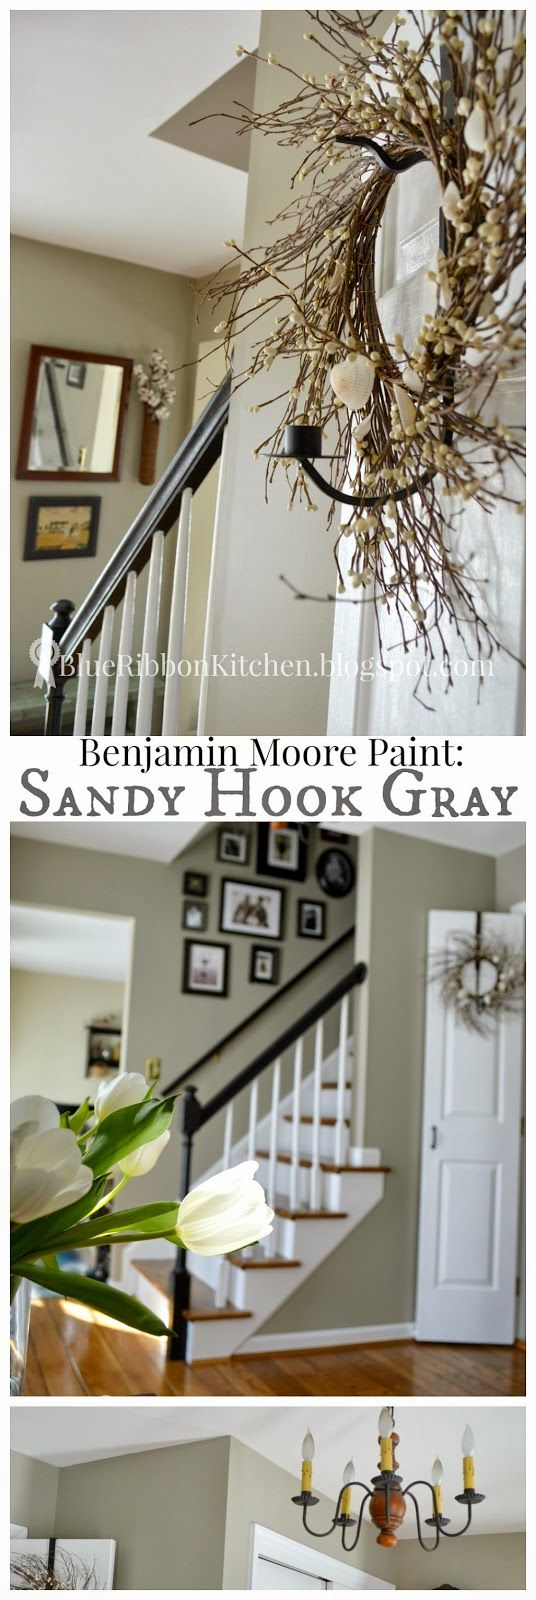 Sandy Hook Benjamin Moore And Peinture Grise On Pinterest